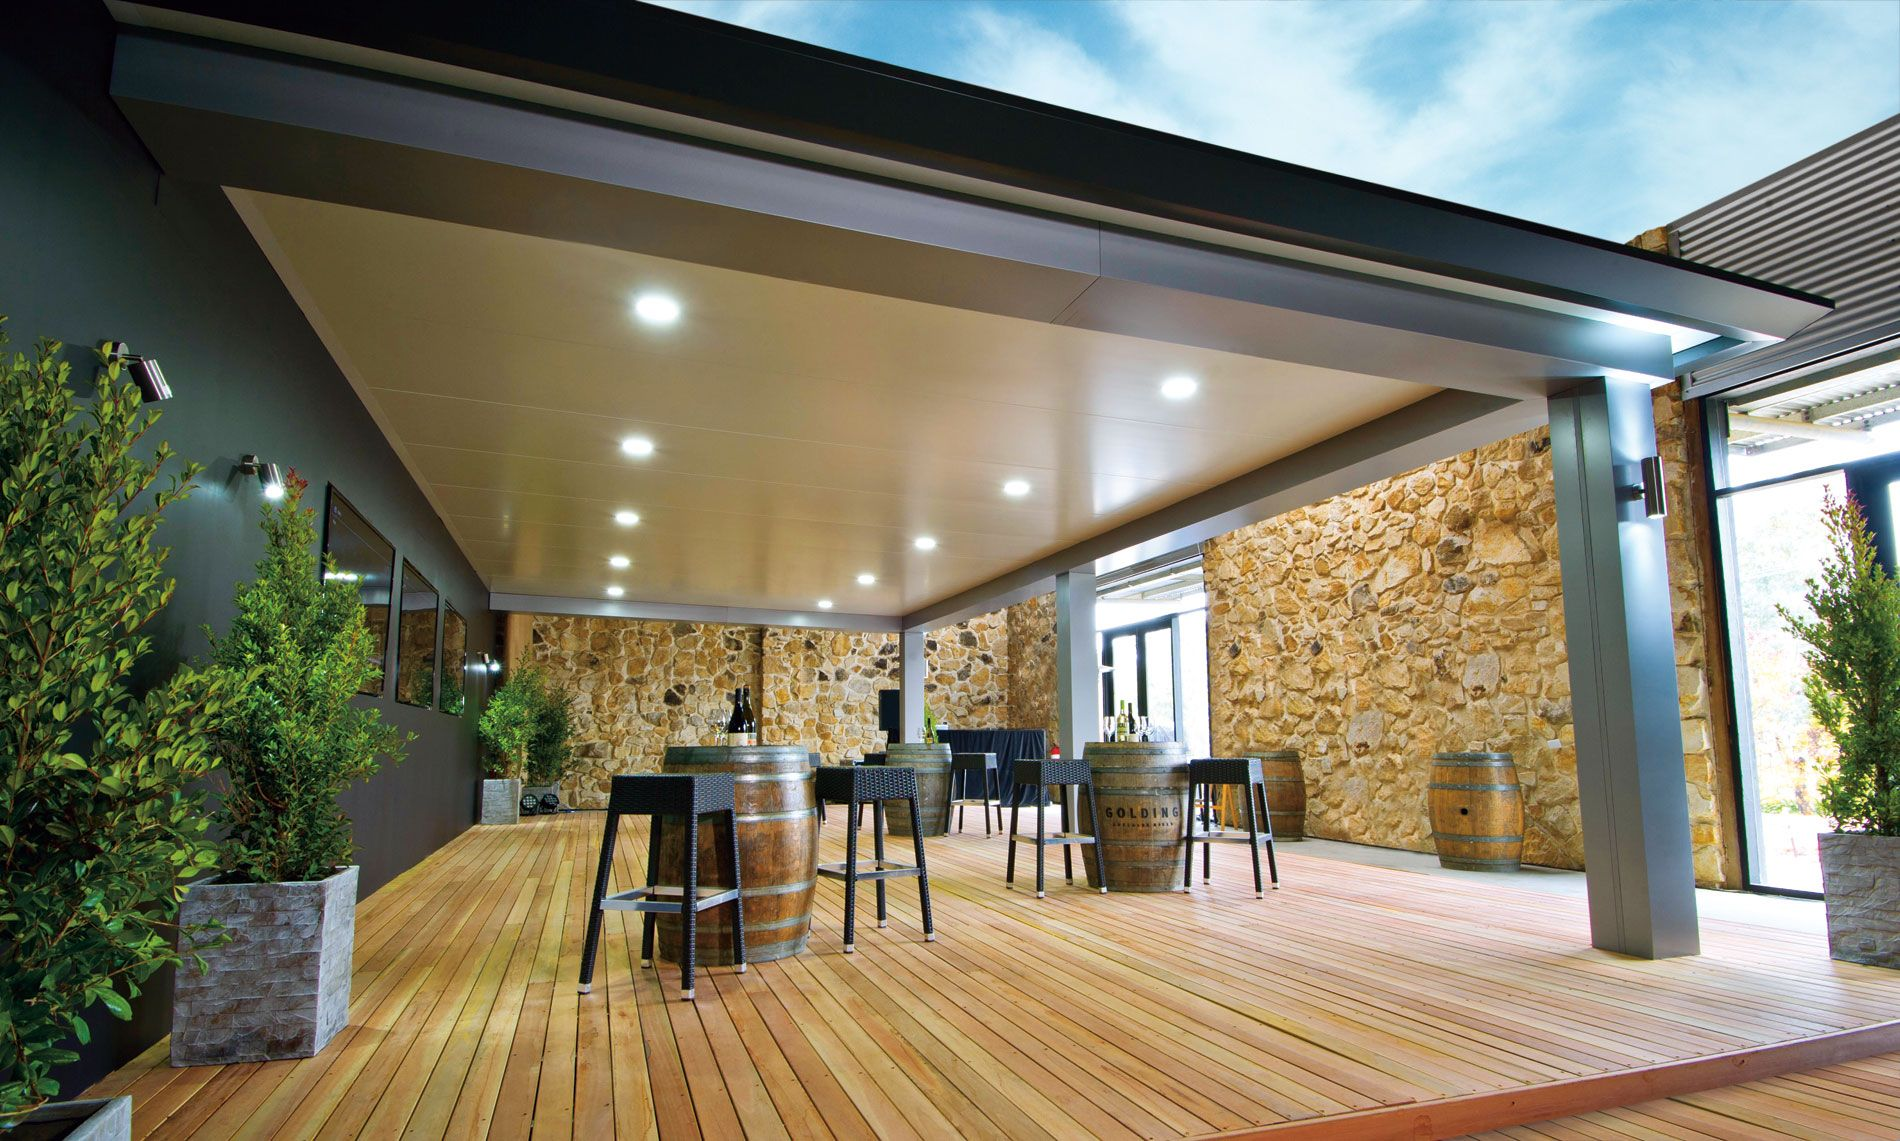 Pavilion Outdoor Living Patio By Stratco Architectural